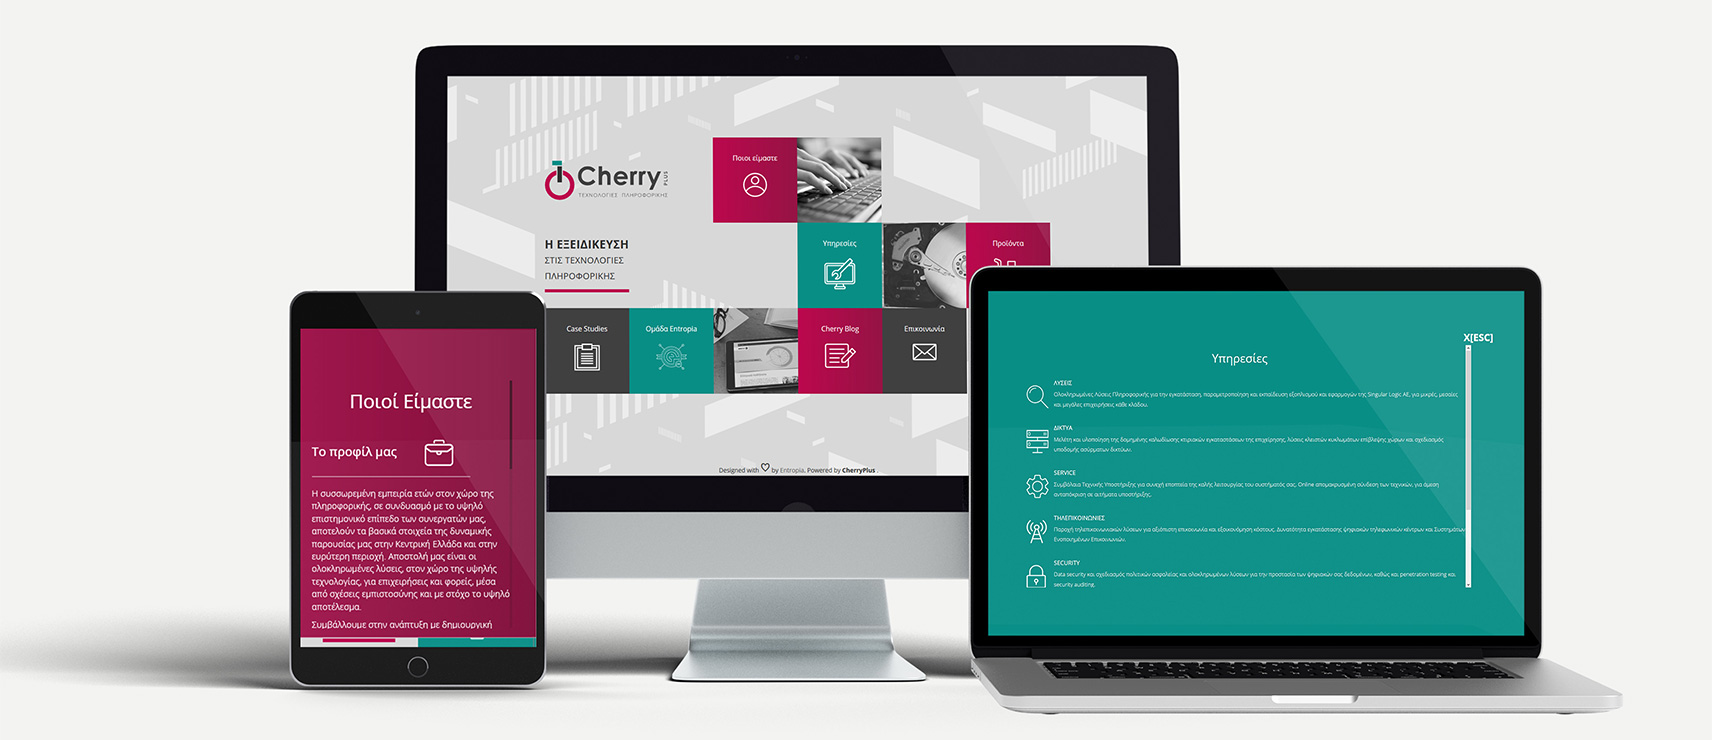 Project Cherry Plus cover